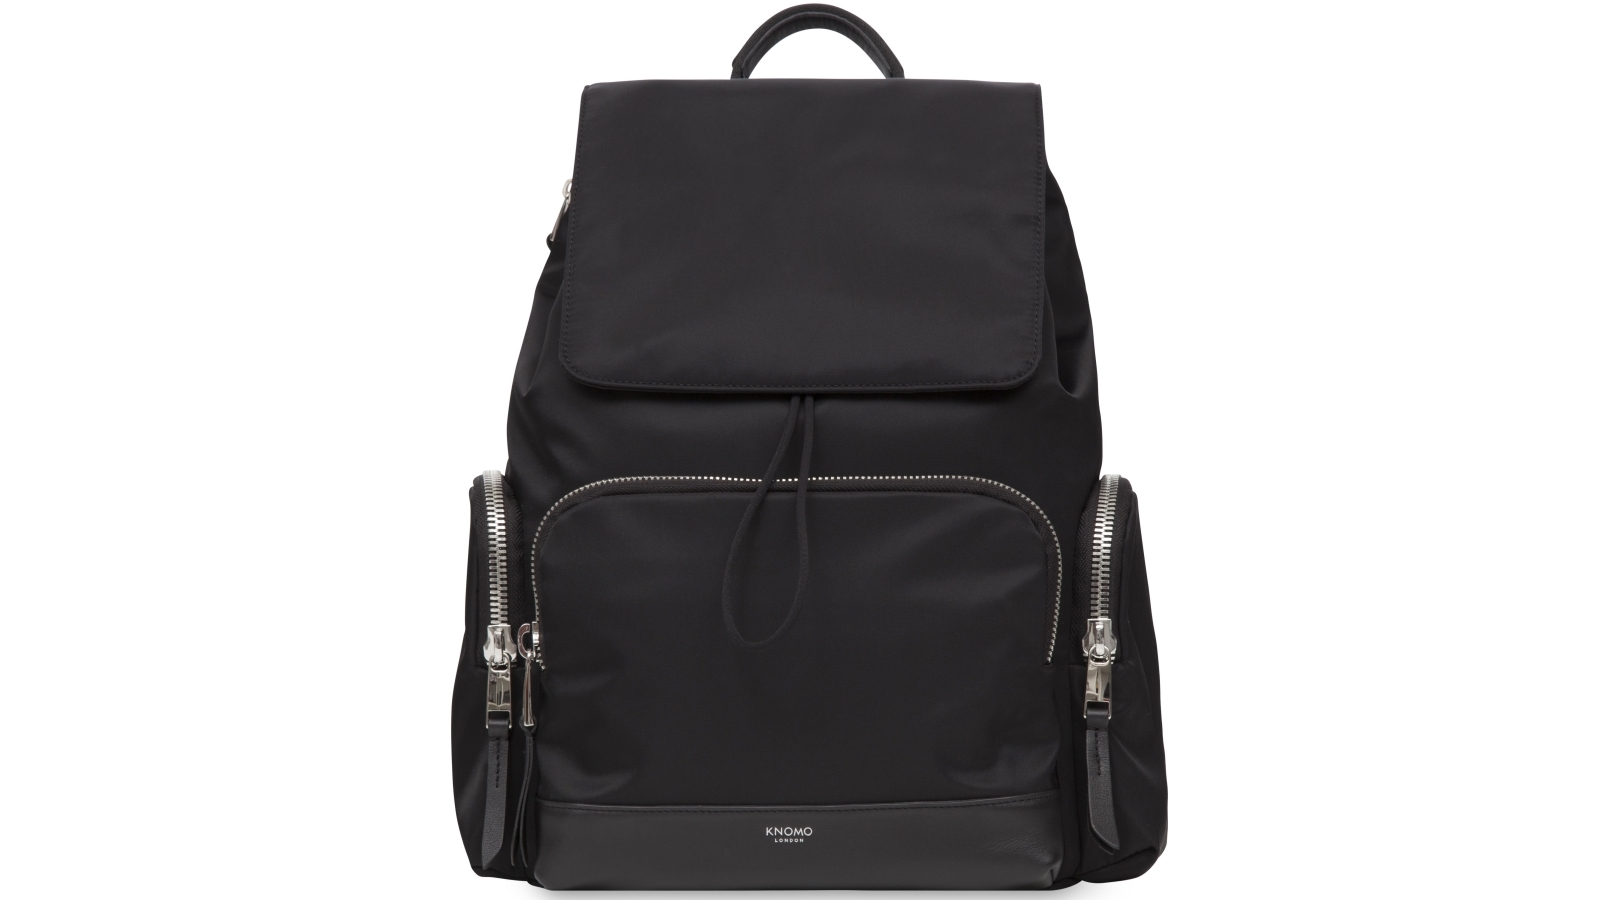 3e64fd956 Buy Knomo Mayfair Clifford 13-inch Laptop Backpack - Black | Harvey Norman  AU